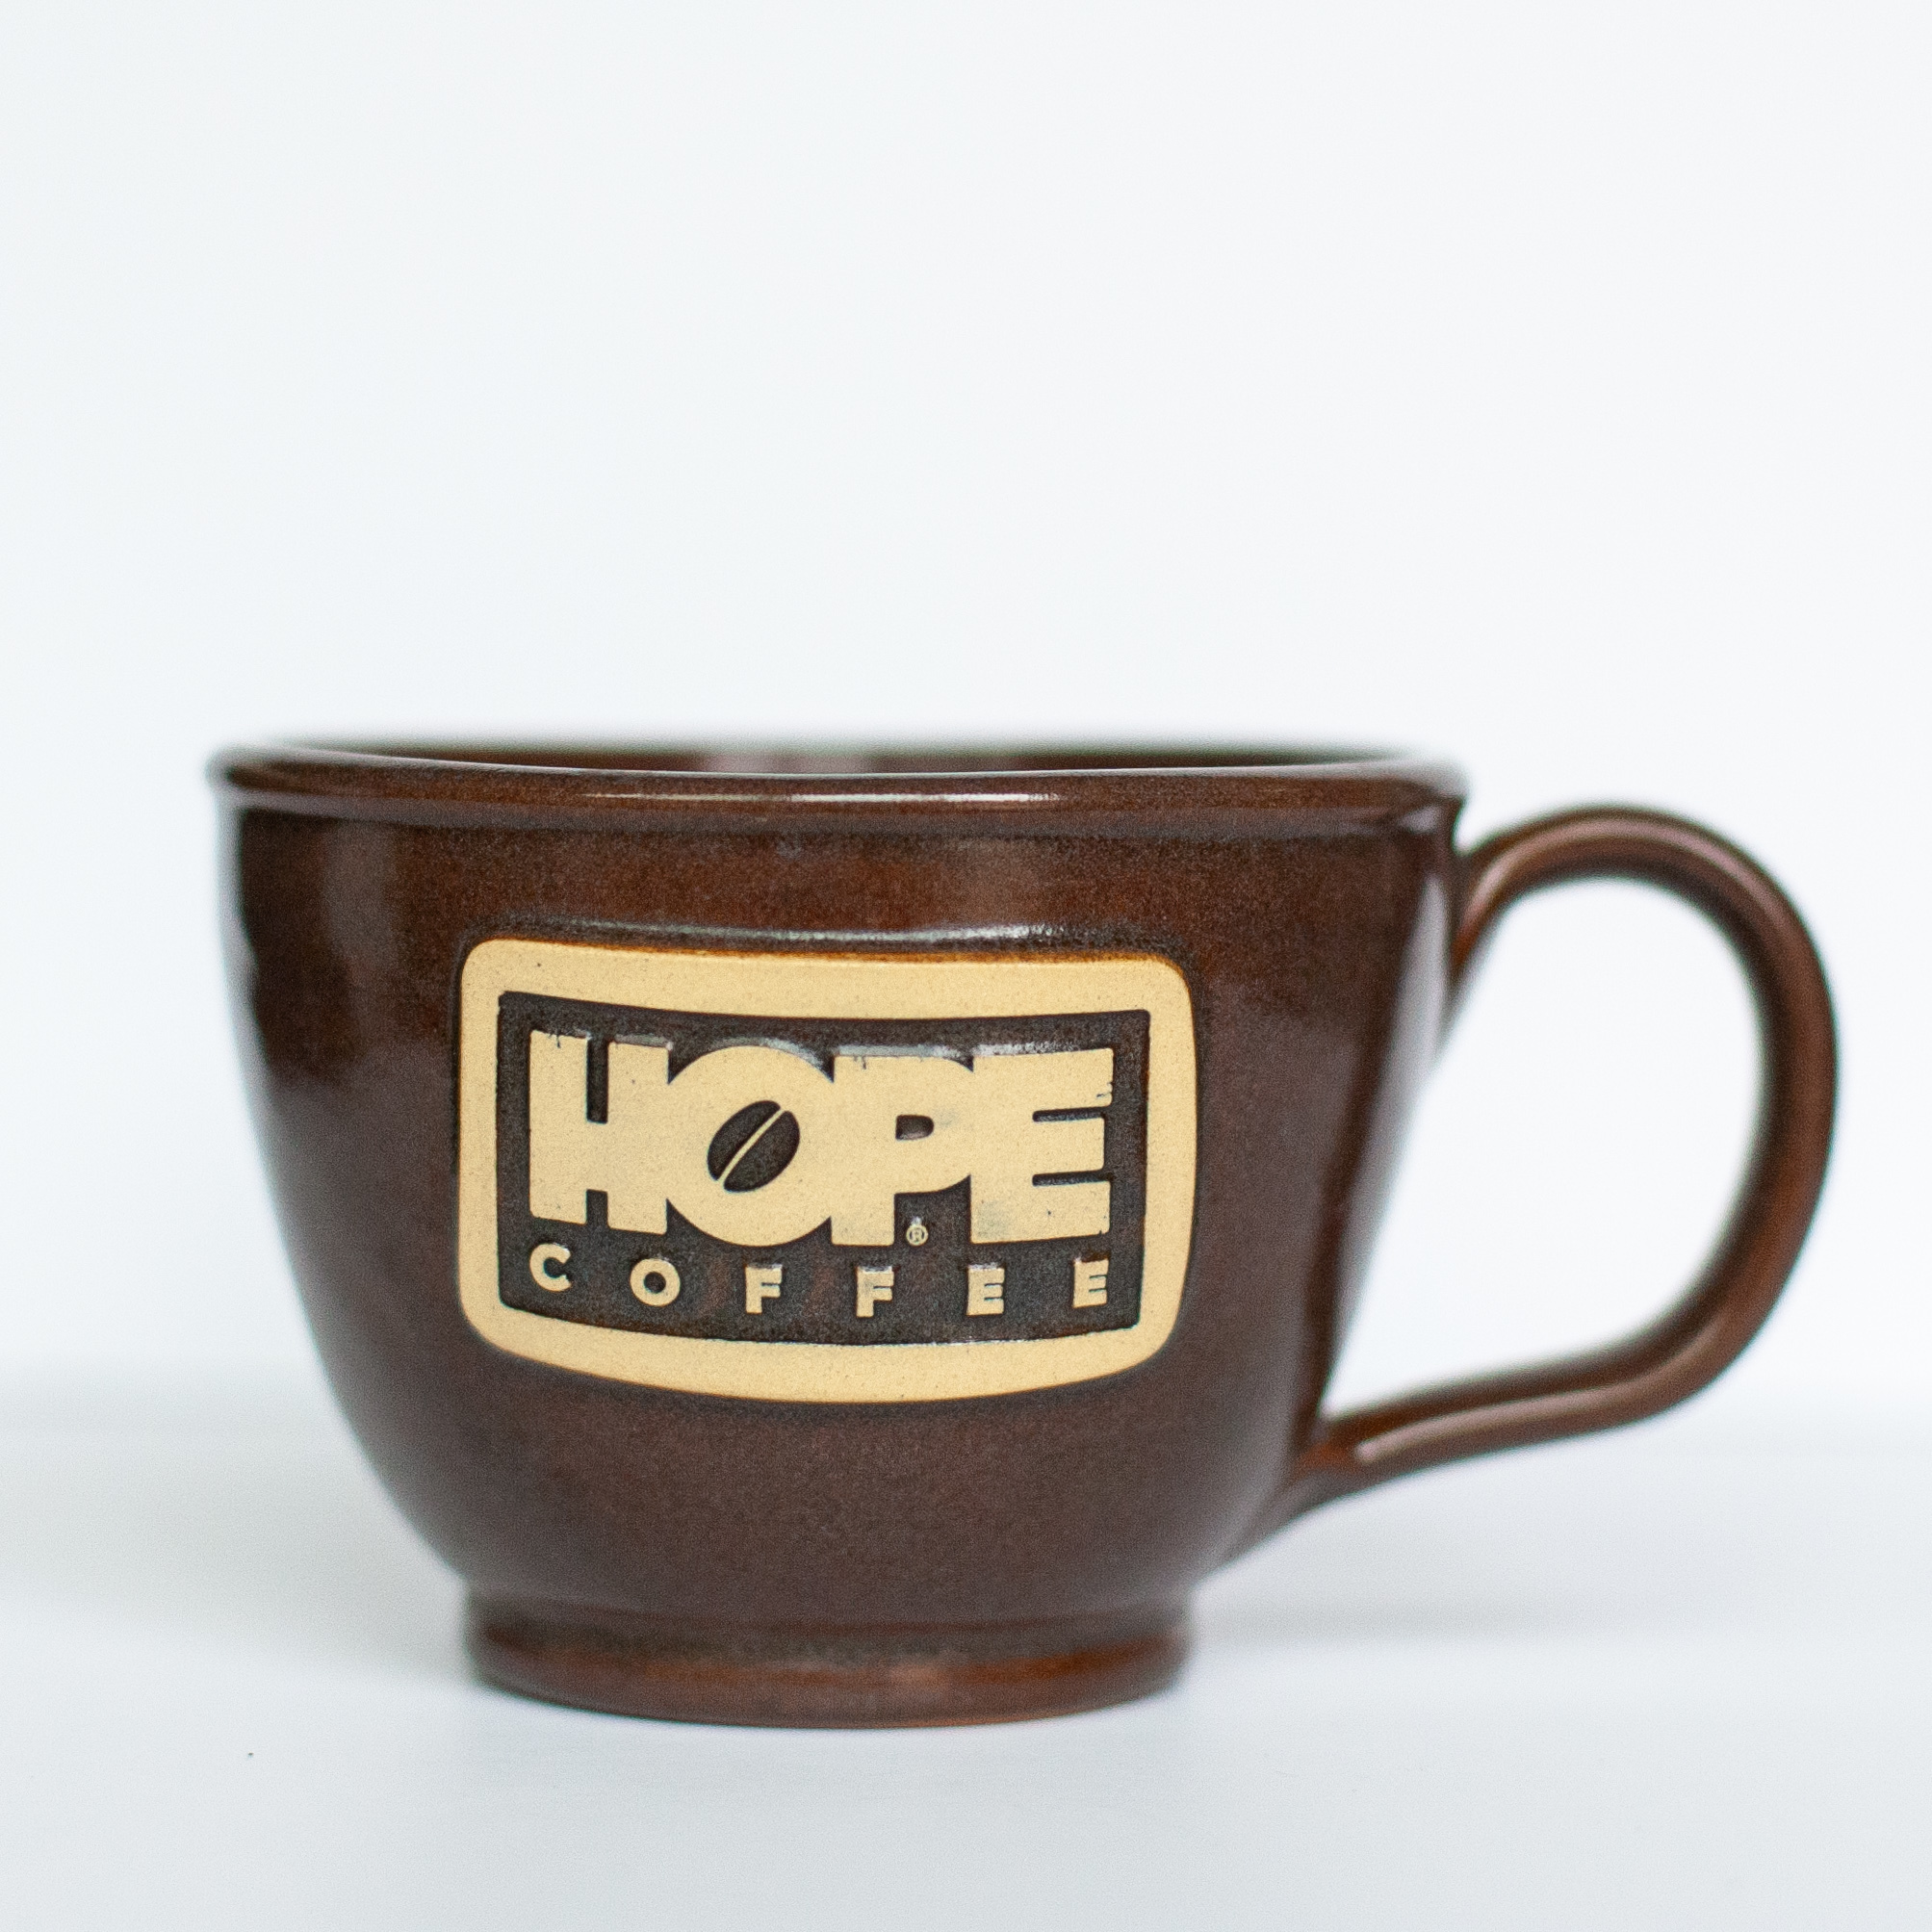 HOPE Coffee 12 oz Handcrafted Stoneware French Latte Mug 20026